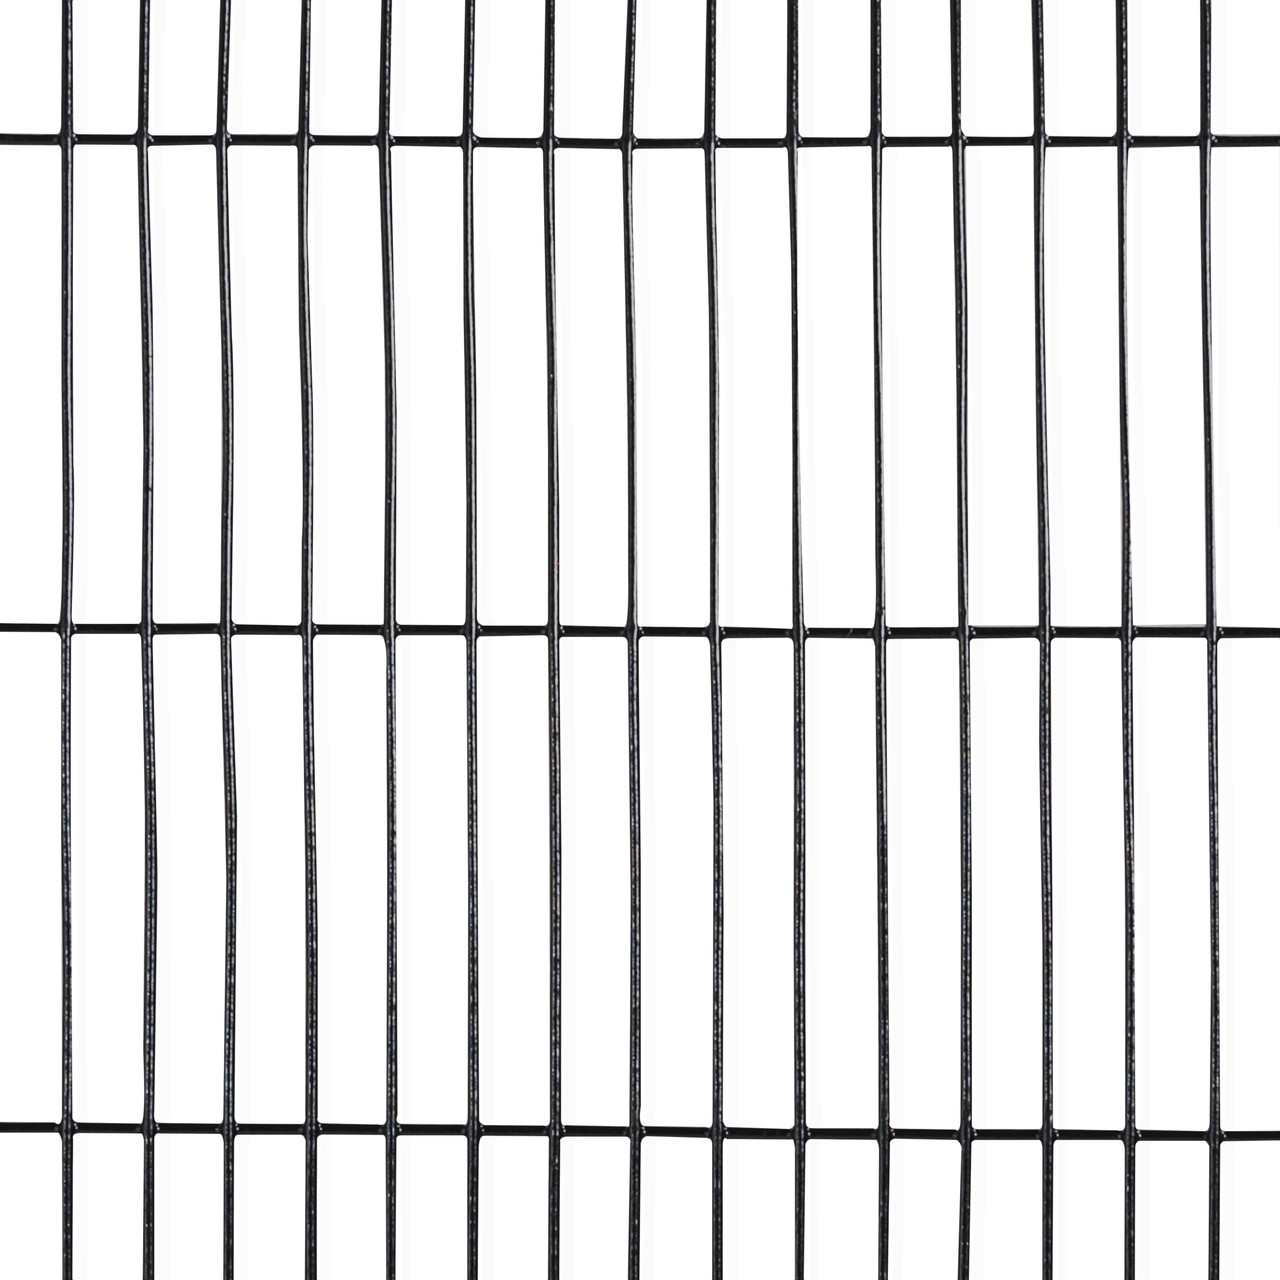 Welded wire mesh weight chart gallery free any chart examples concrete wire mesh sizes chart dolgular excellent welded wire mesh sizes contemporary electrical wiring nvjuhfo gallery greentooth Images